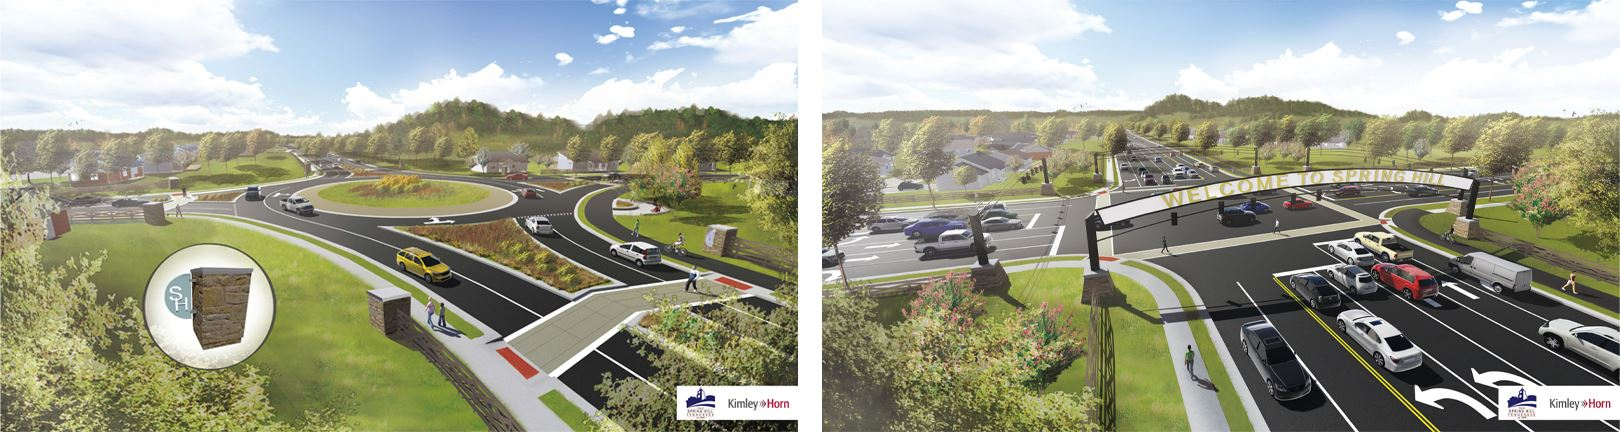 Buckner Road design concept renderings